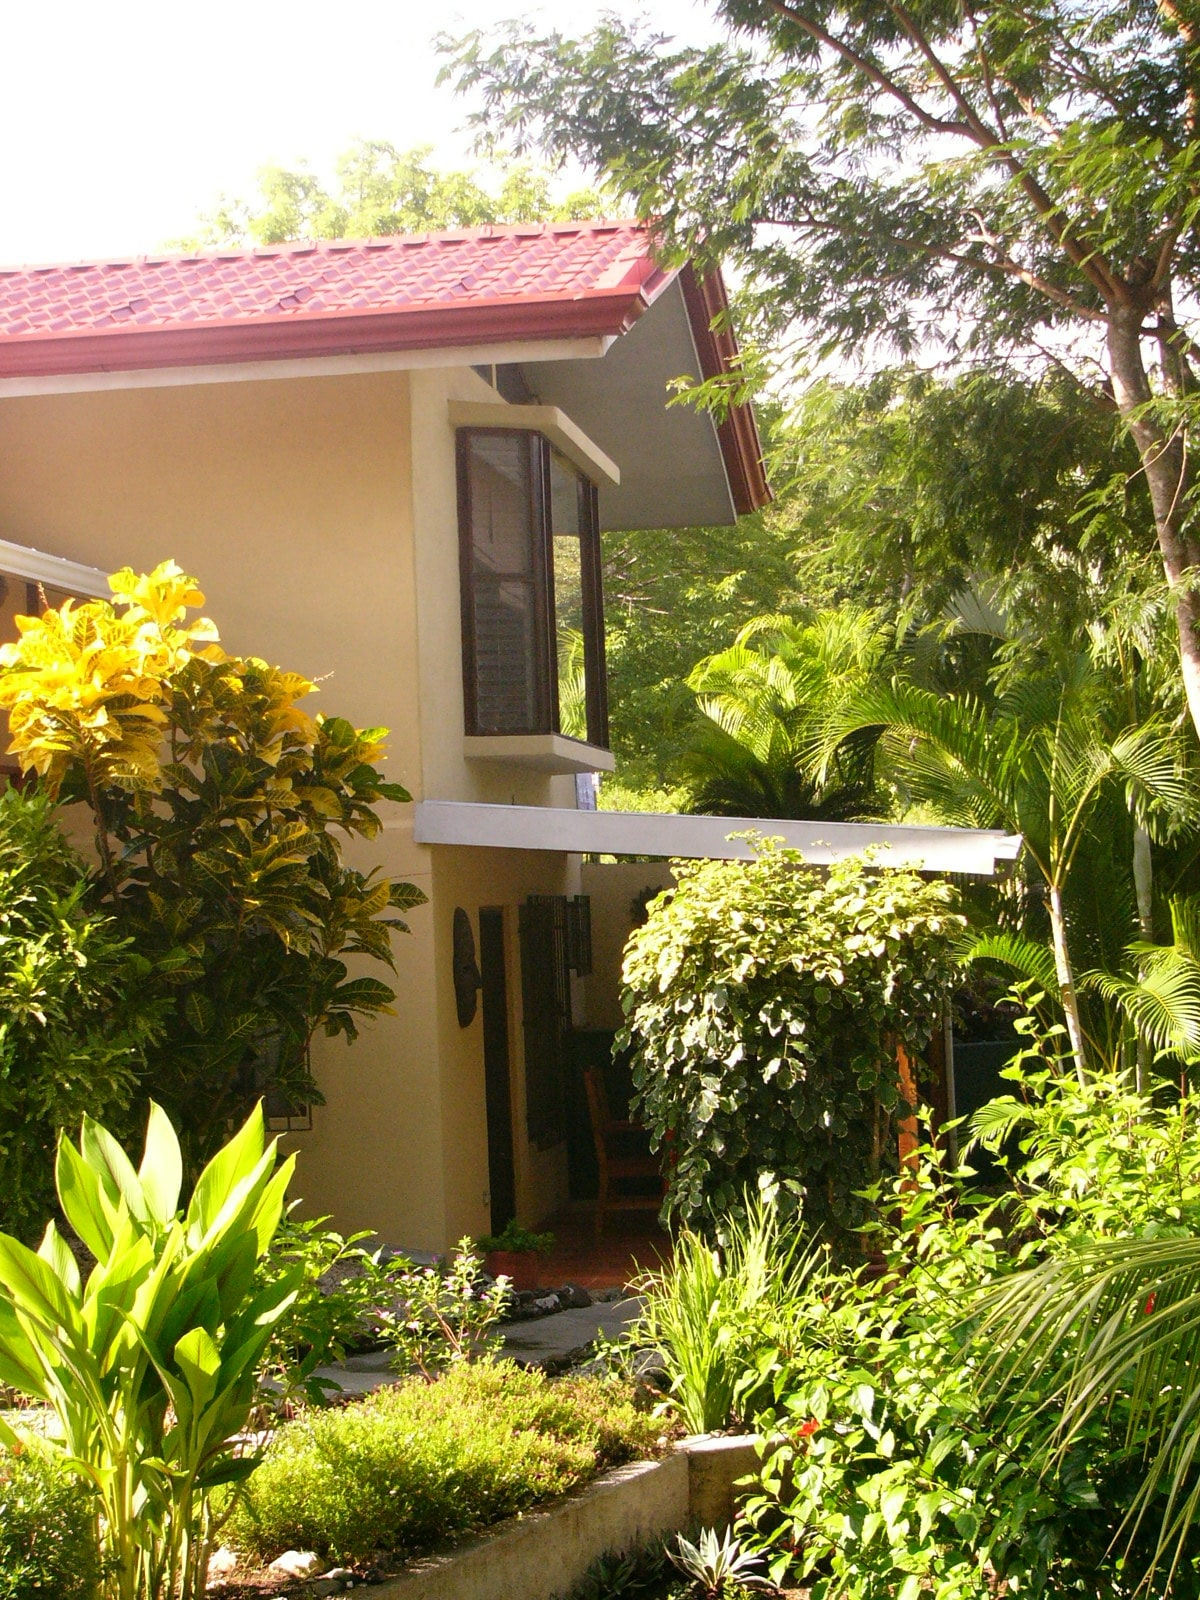 B&B in a lush tropical garden!